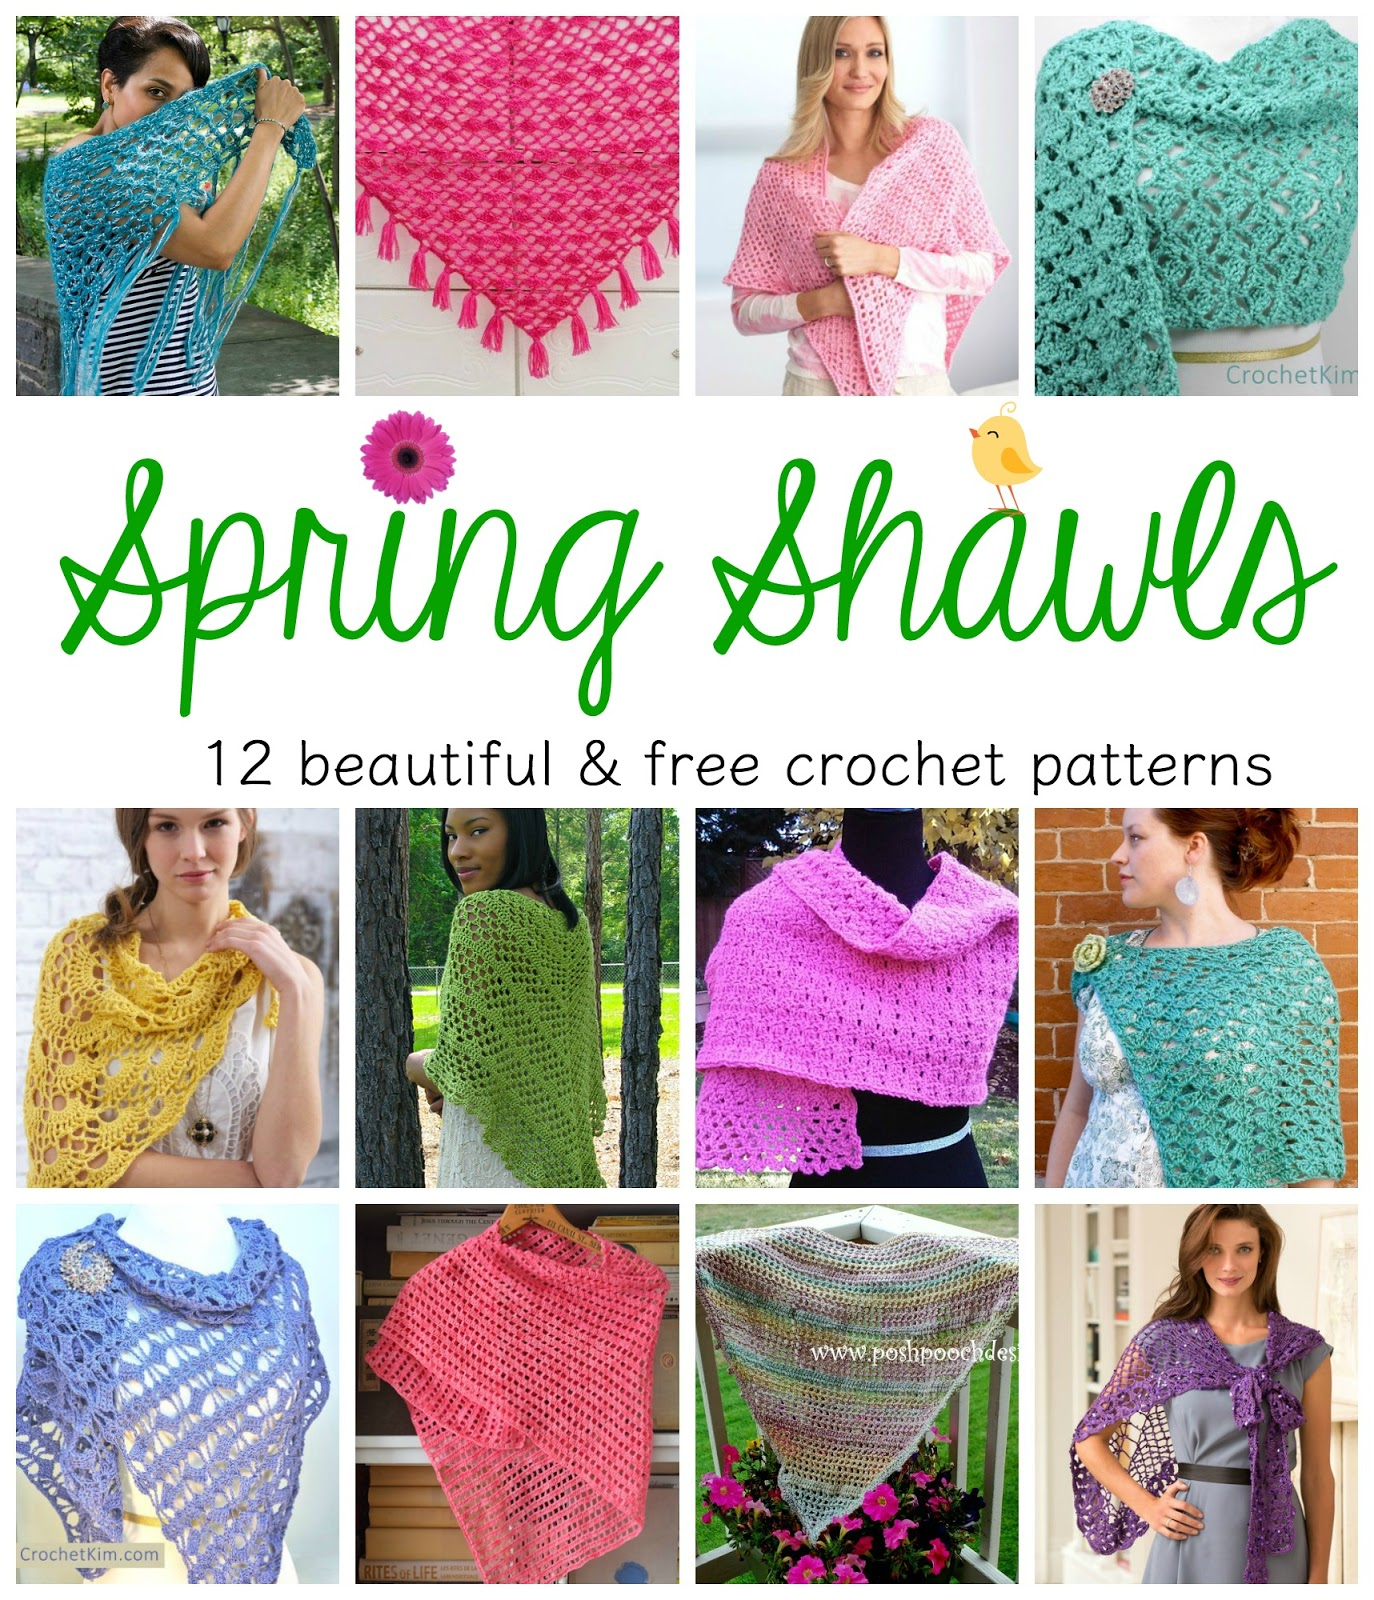 Free Crochet Shawl Patterns For Spring : Fiber Flux: Spring Shawls! 12 Beautiful & Free Crochet ...